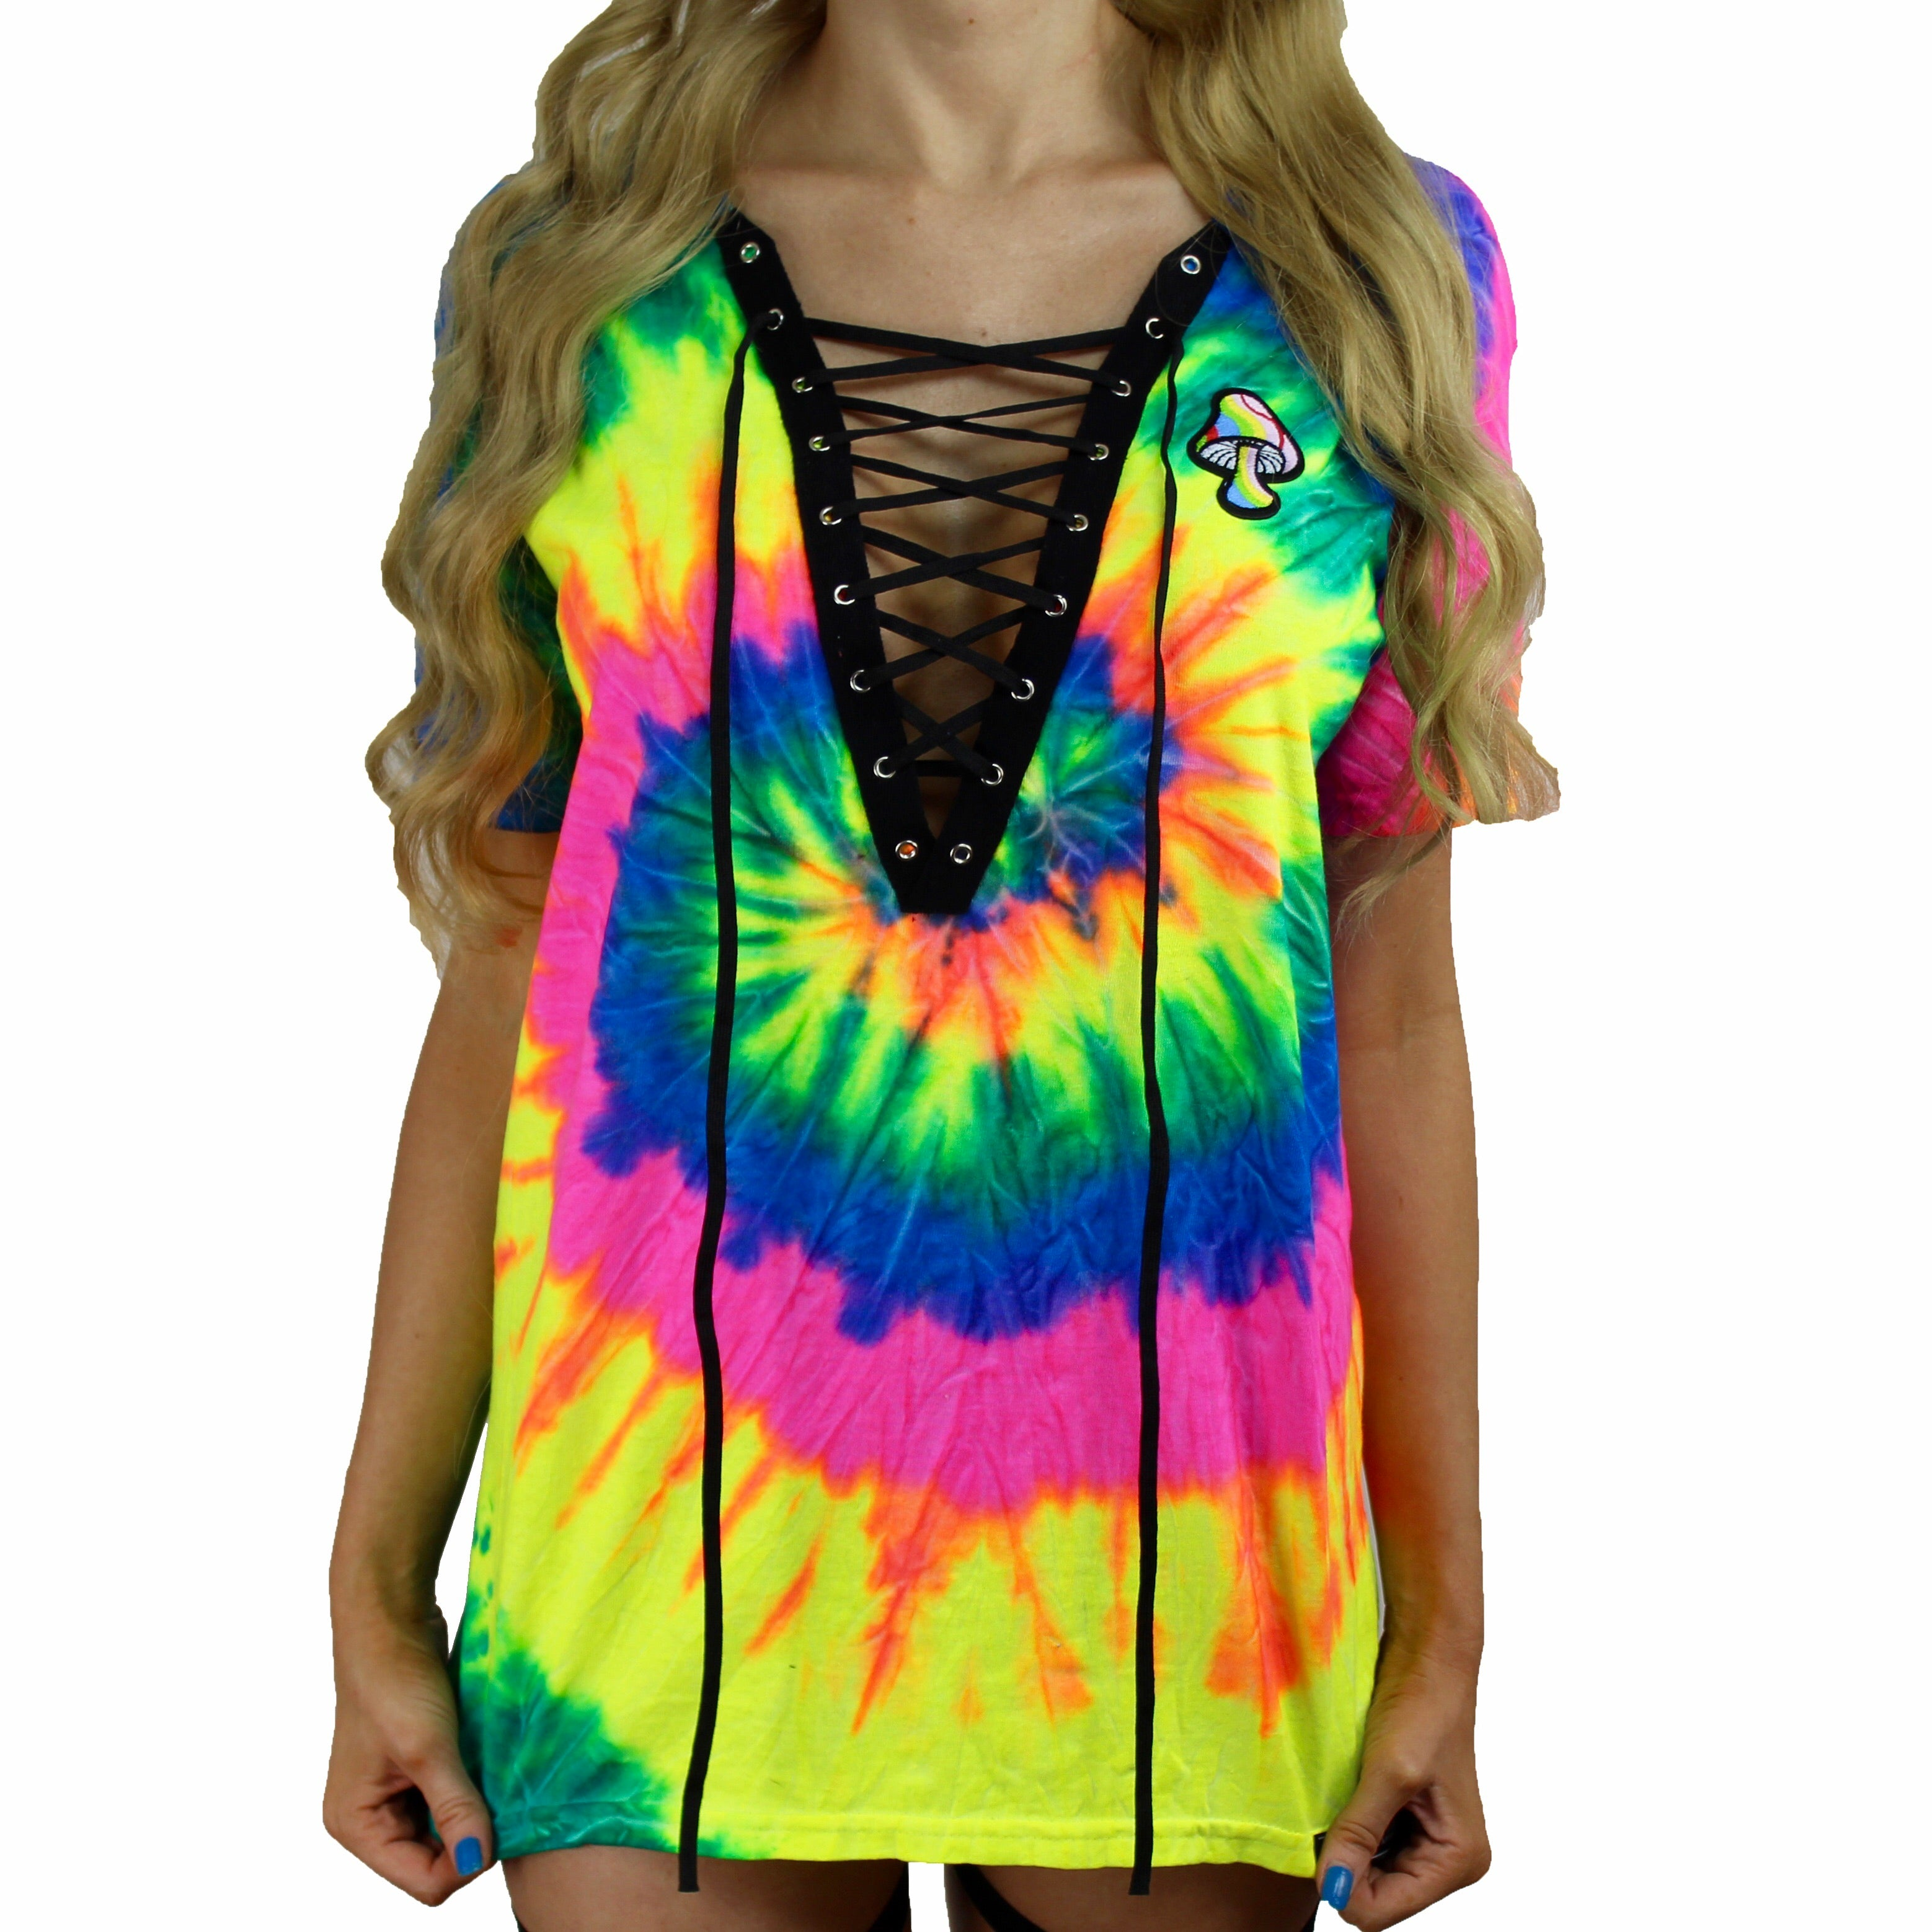 94c7e3ff2a Reactive Neon Rainbow Tie Dye Lace Up – IMMERSIVE LIVING